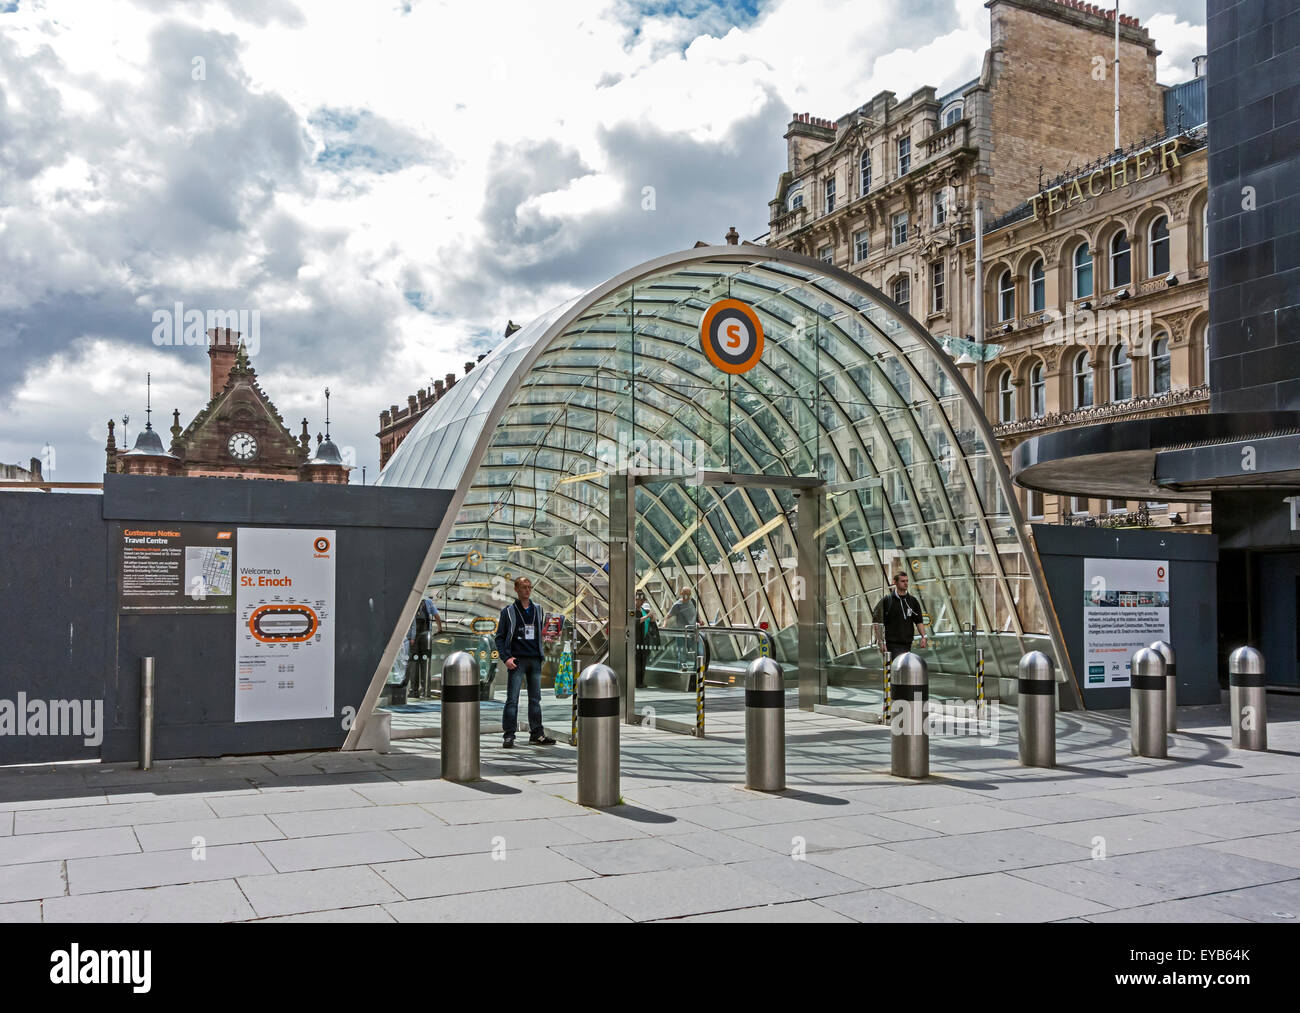 The new Glasgow Subway entrance and St Enoch Shopping Centre at St Enoch Square in Glasgow Scotland - Stock Image